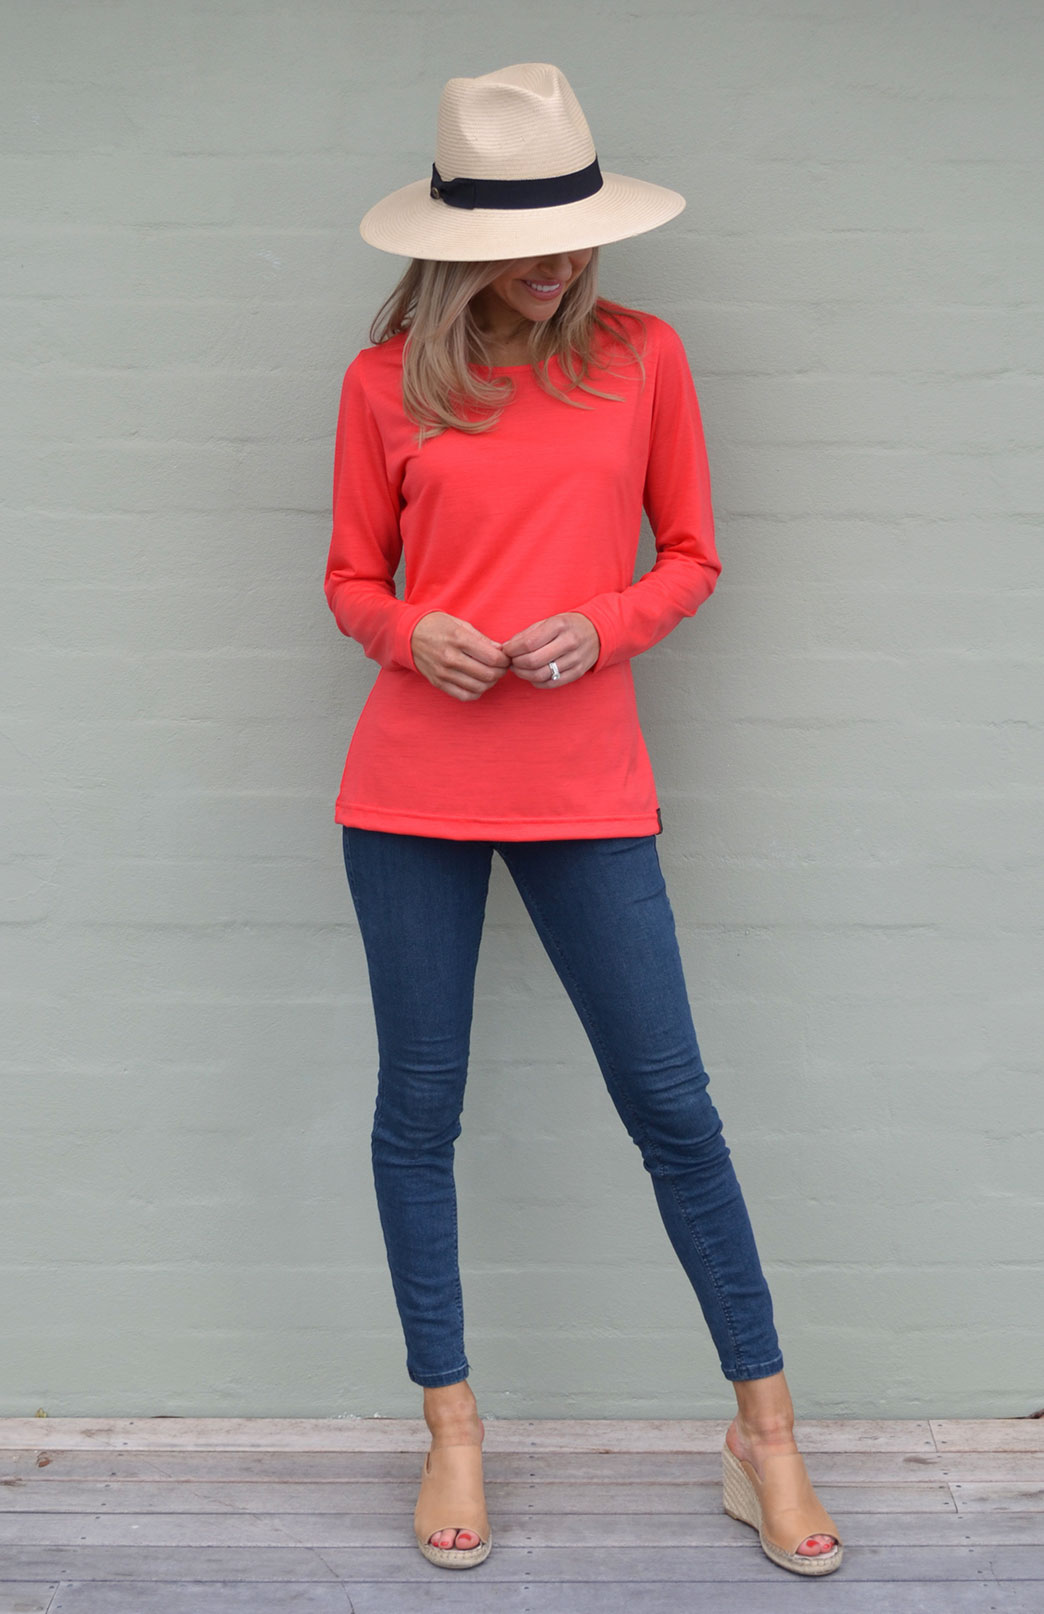 Round Neck Top (Plain) - Women's Lightweight Merino Wool Summer Coral Long Sleeved Round Neck Top - Smitten Merino Tasmania Australia